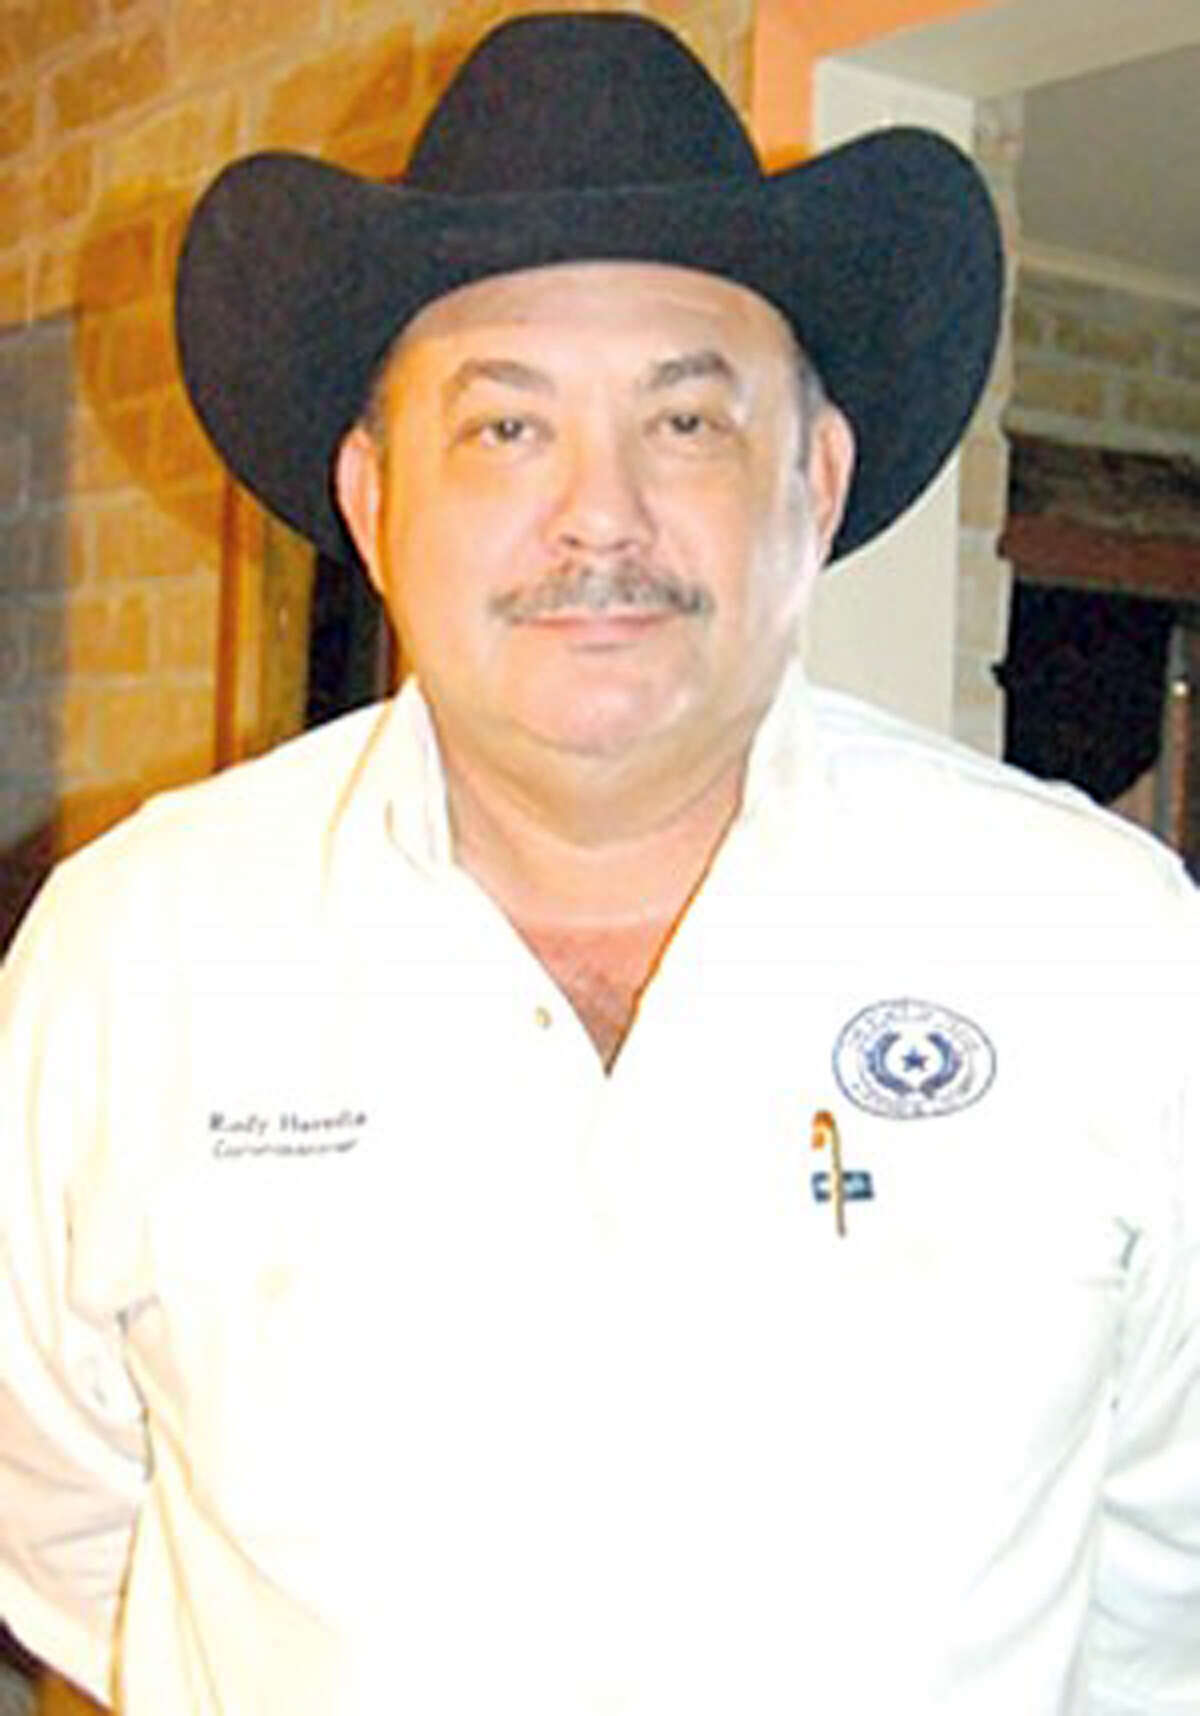 Maverick County Commissioner Rodolfo Heredia is accussed of smuggling money into the United States from Mexico after selling his truck to a Zetas associate.